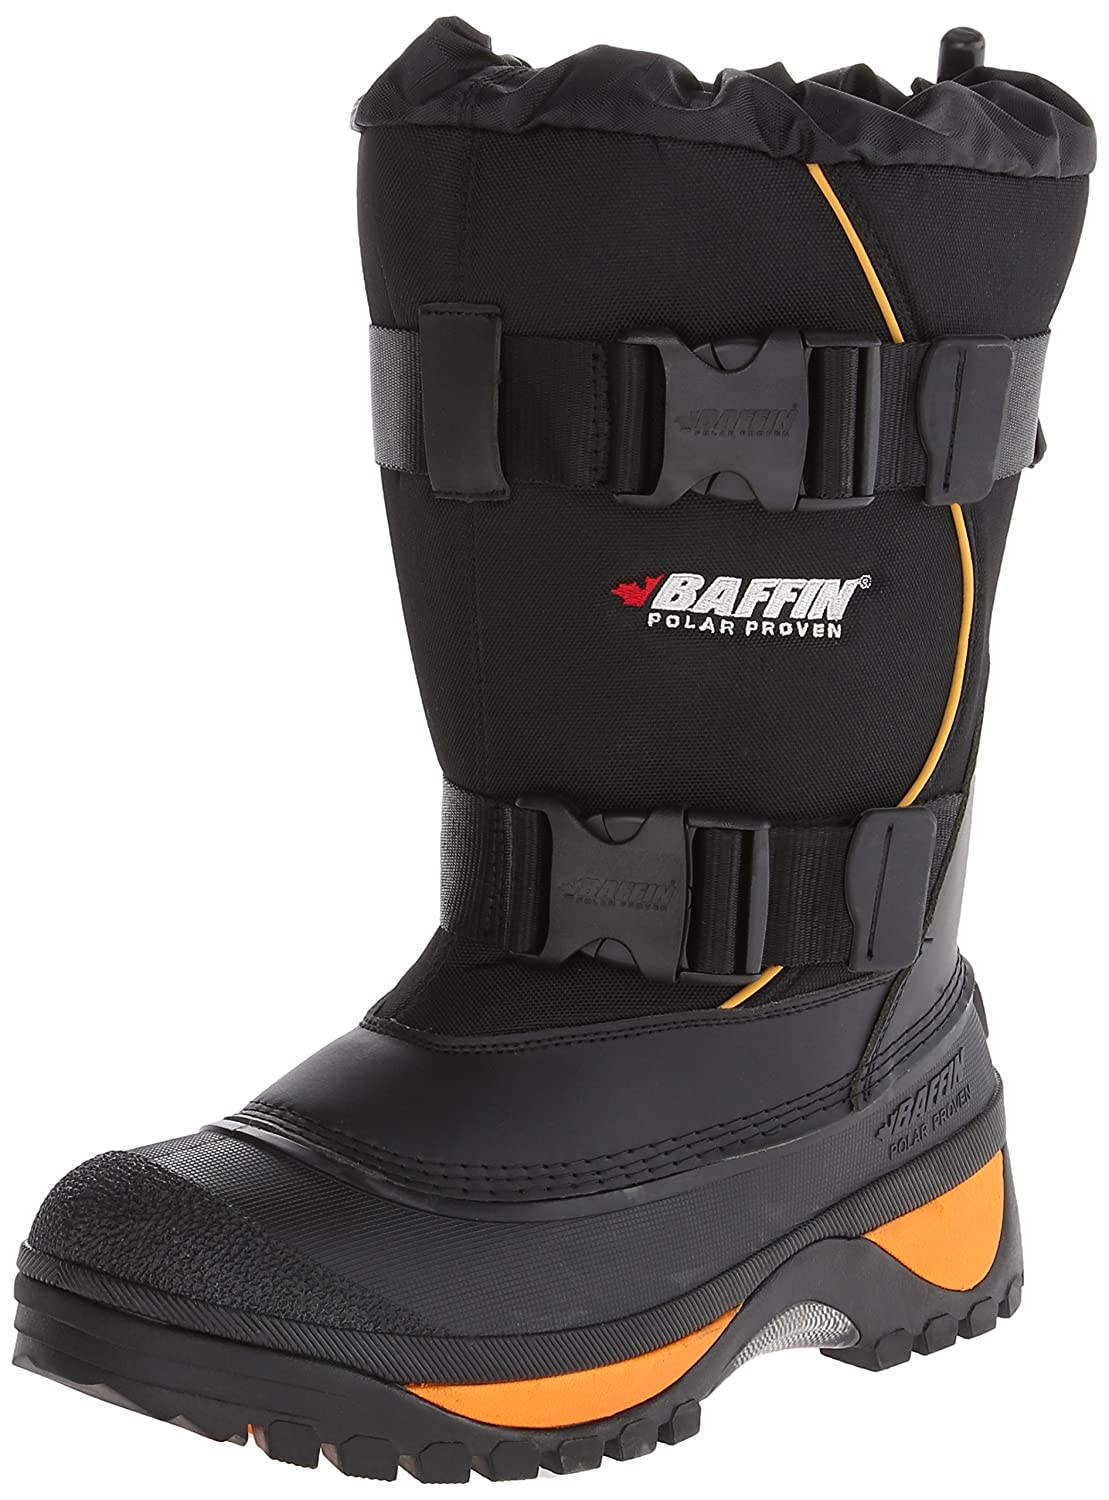 Baffin Men's Wolf Snow Boot 43000015-231-13.0